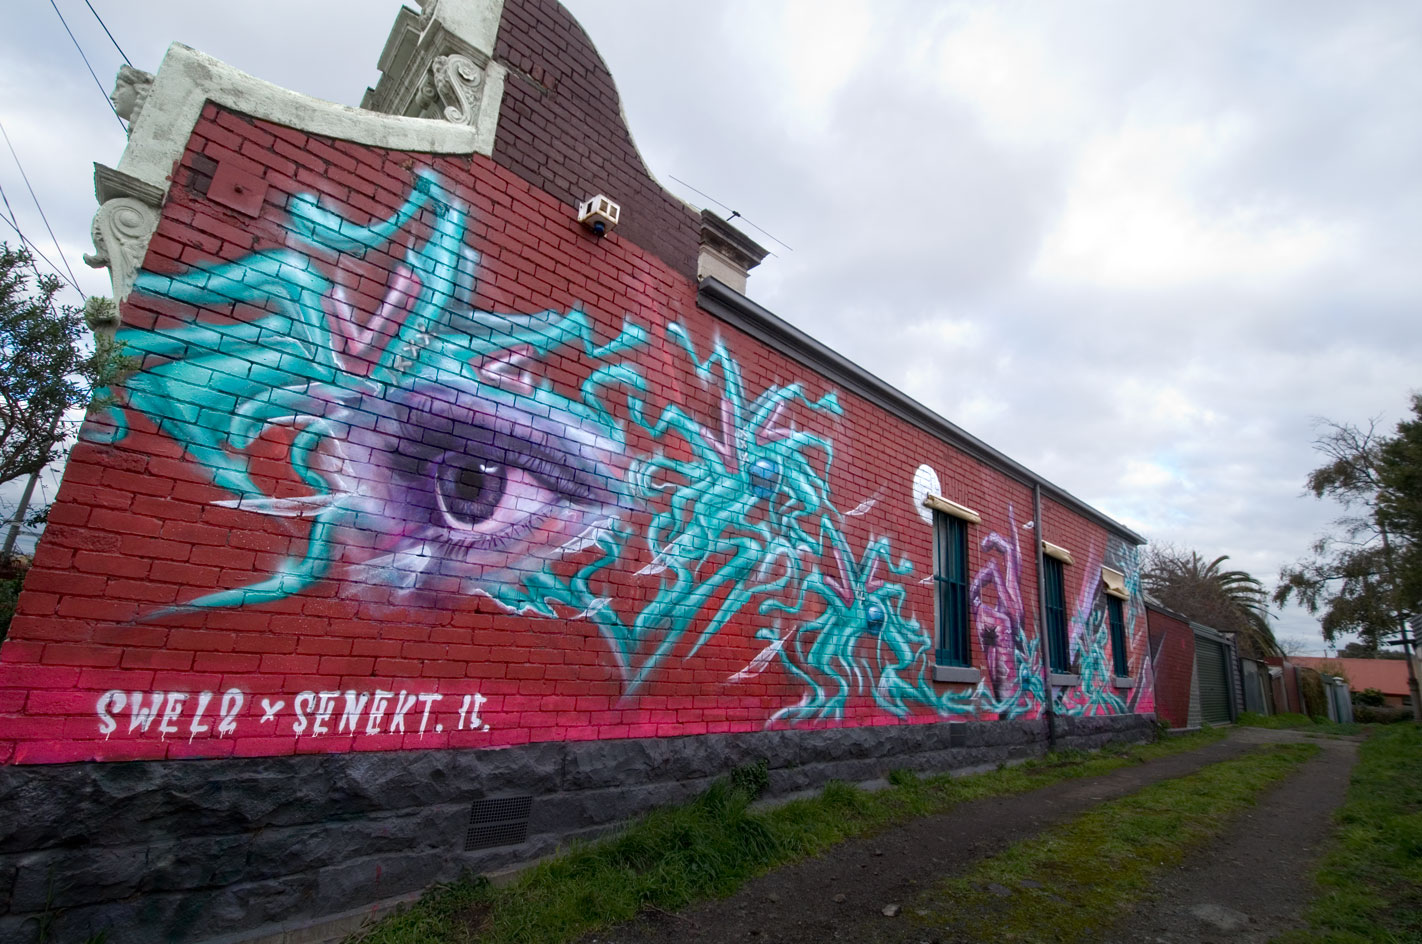 all-those-shapes_-_swel2_senekt_-_eye-storm-alley-watch_-_brunswick